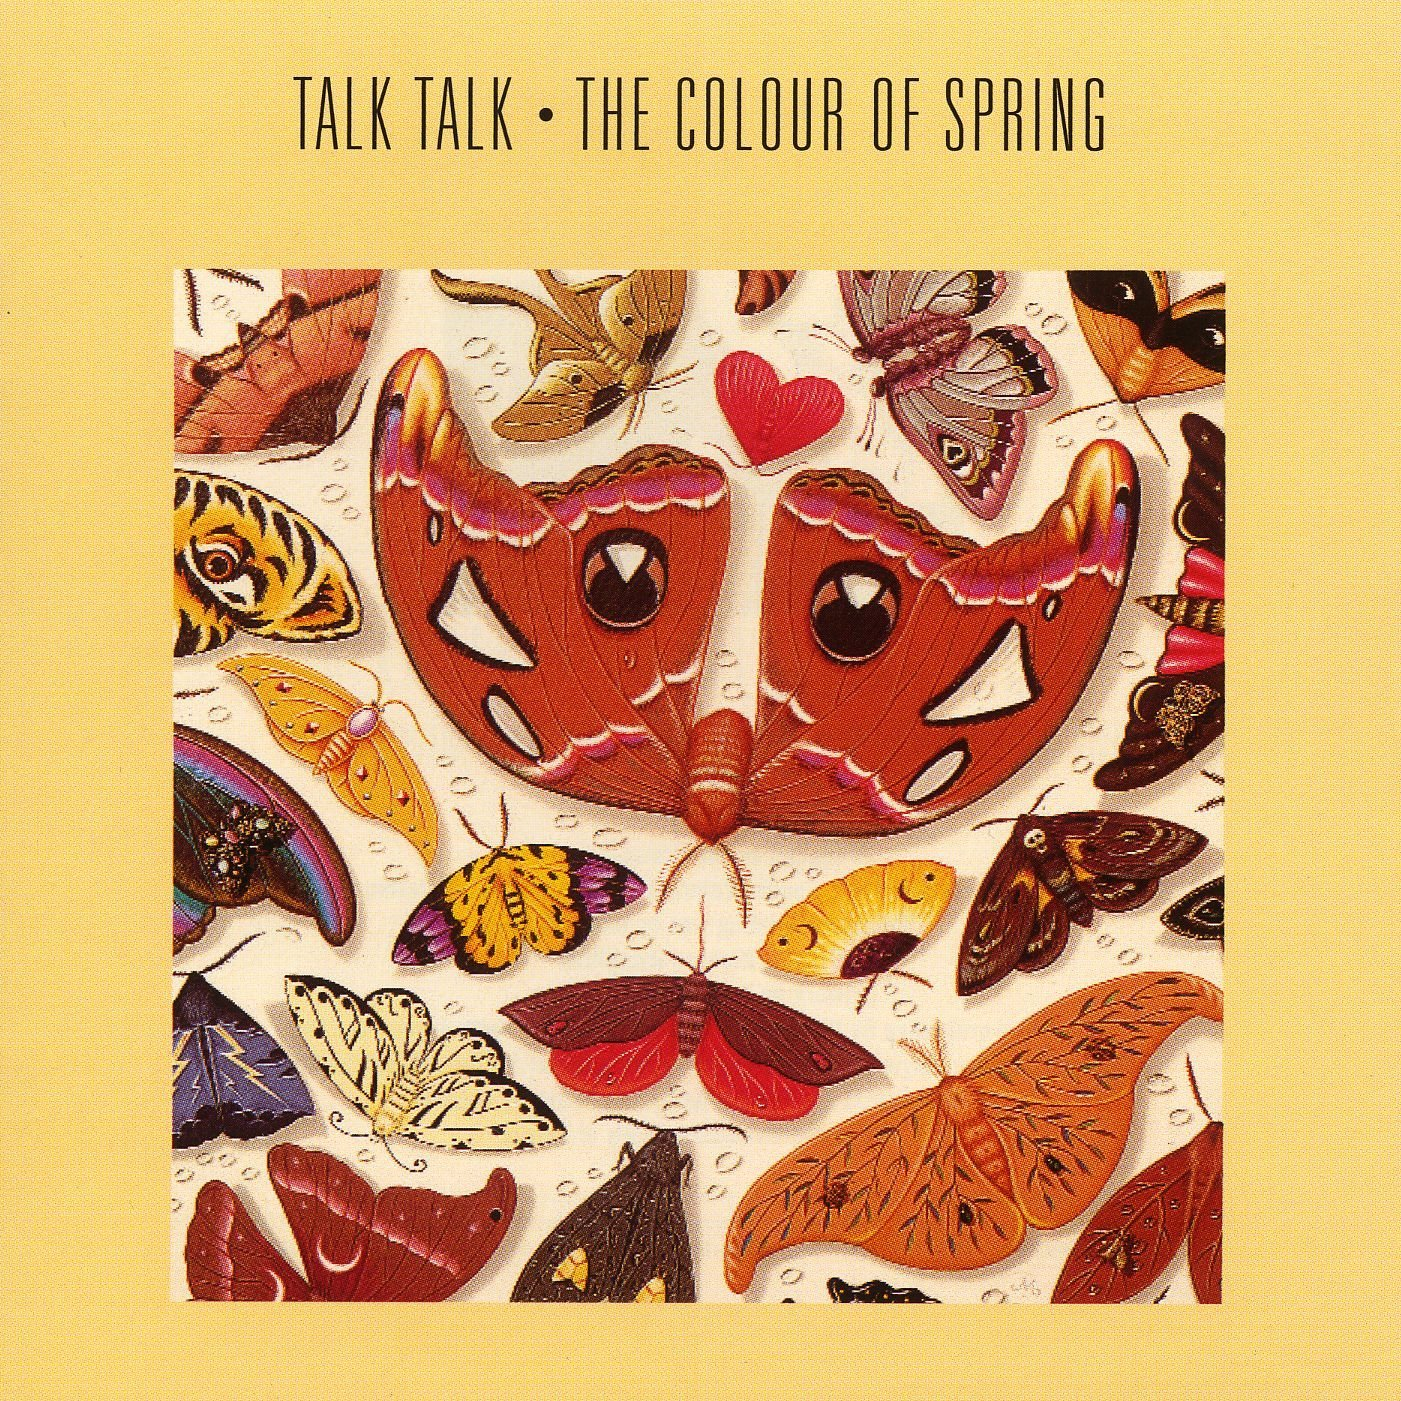 Talk Talk ‎– The Colour Of Spring (EMI, 1986). Cover art by James Marsh.